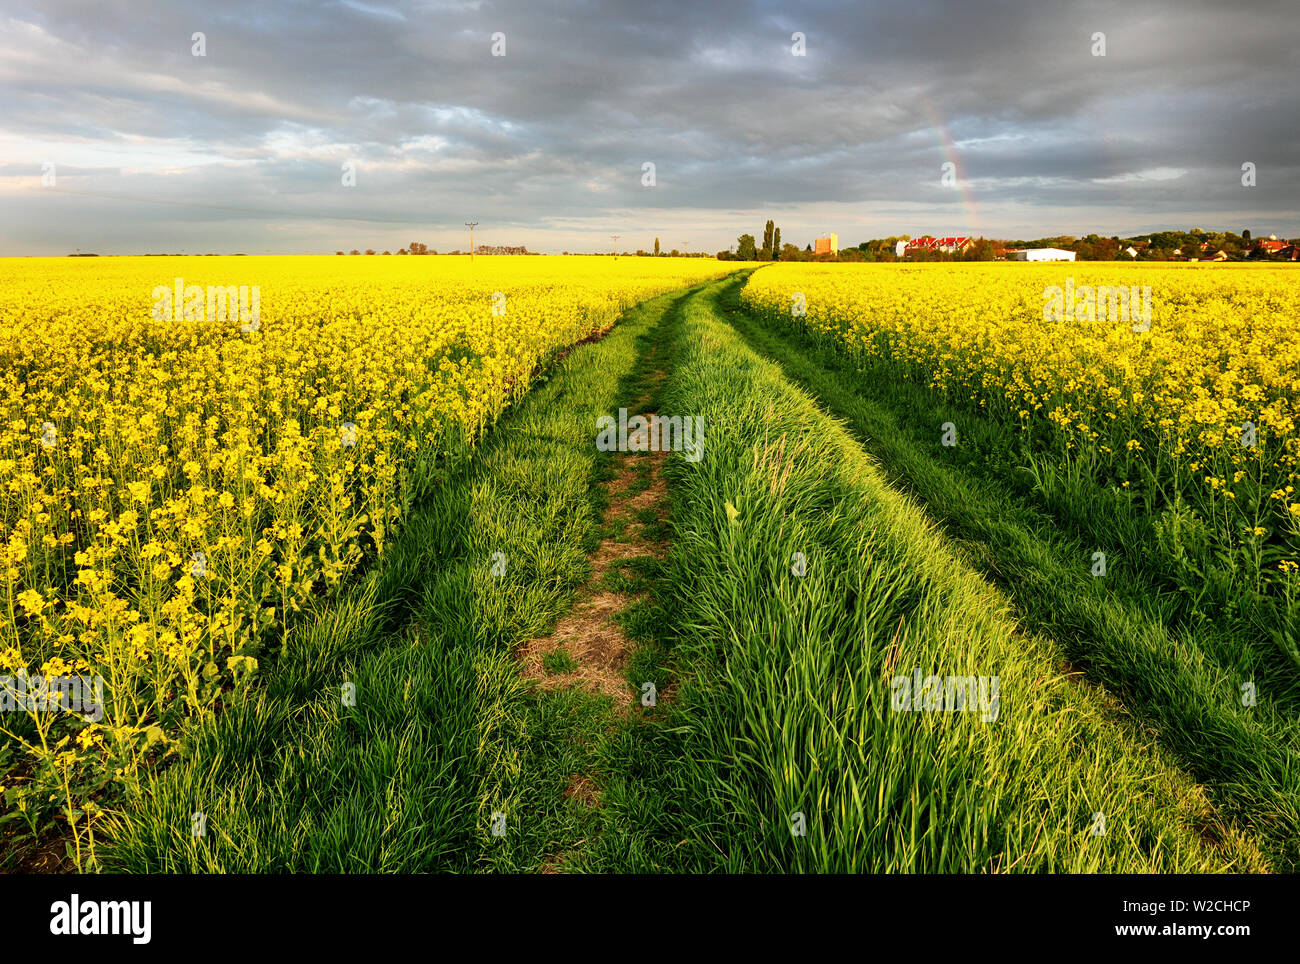 Rape field with in the rural landscape with path Stock Photo